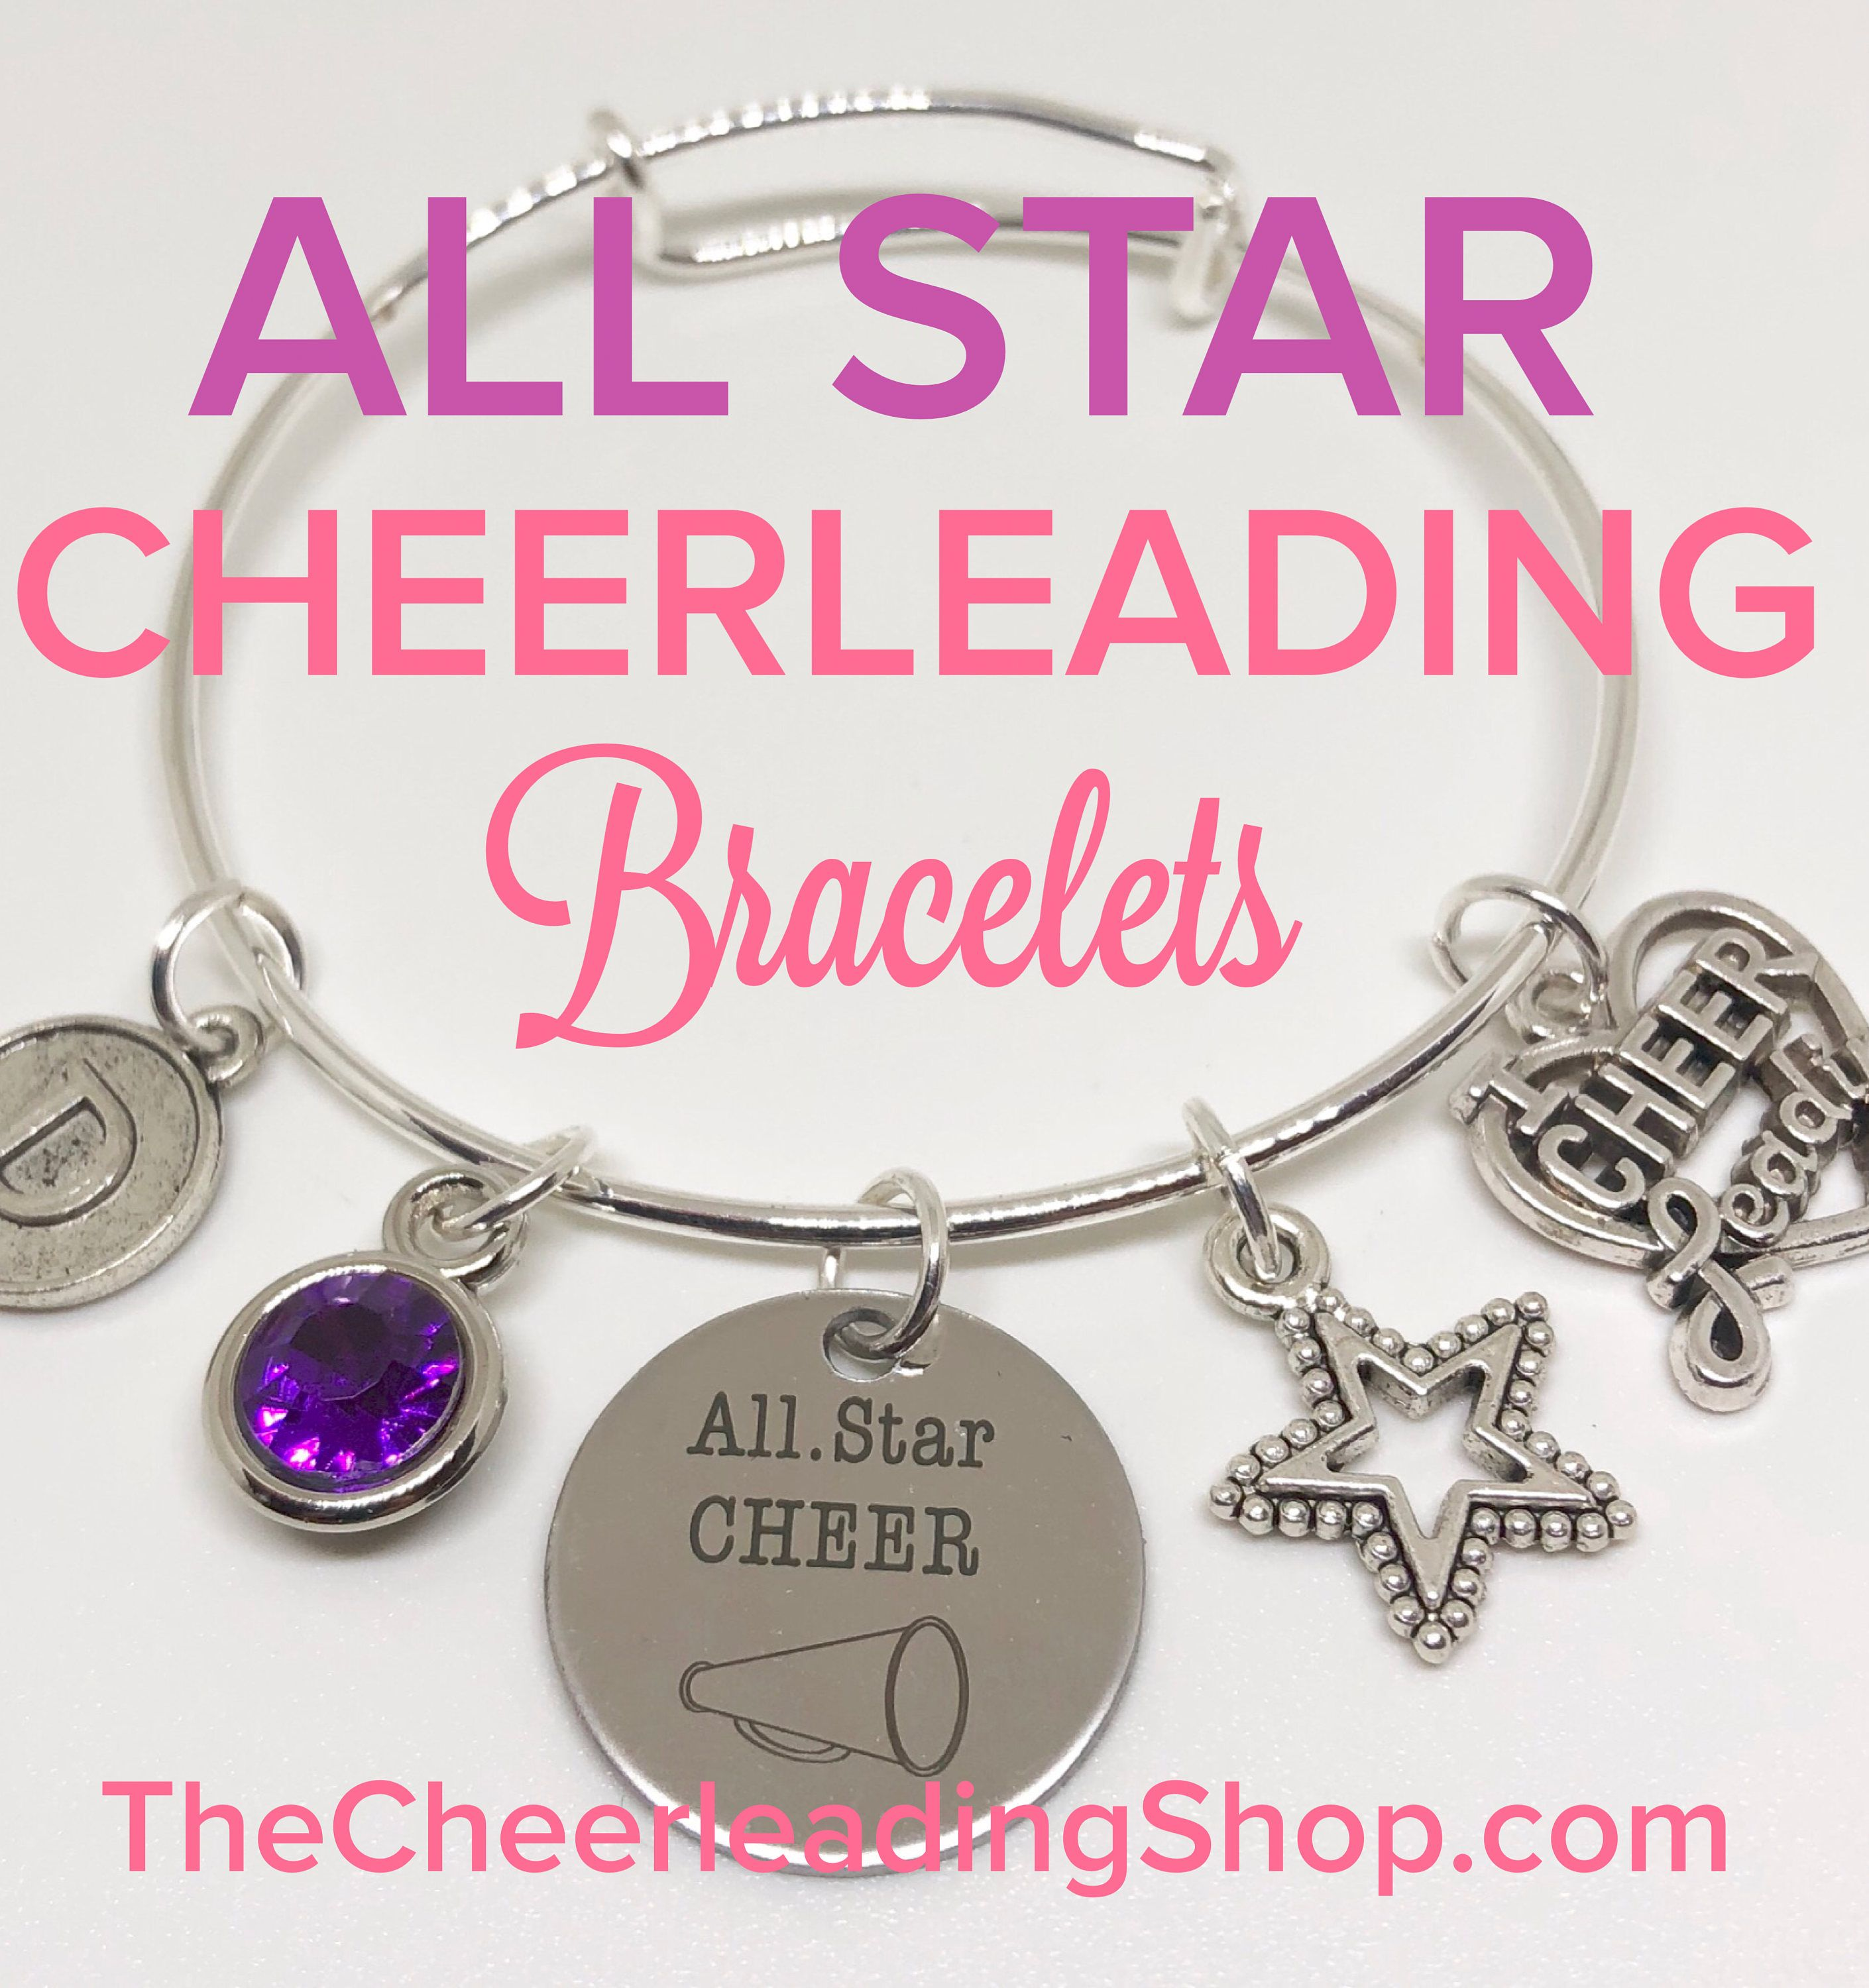 Do you have an All Star Cheerleader and would LOVE the perfect personalized gift? Check out the GORGEOUS All Star Cheerleader bracelets from TheCheerleadingShop.com. :-)